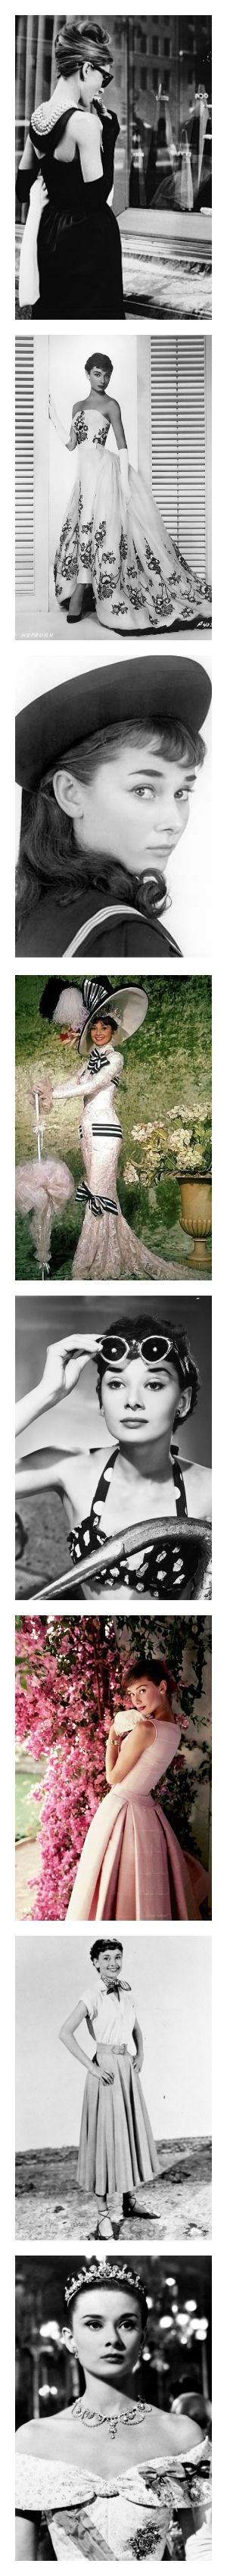 8 best Costume ideas: Audrey Hepburn images on Pinterest ...